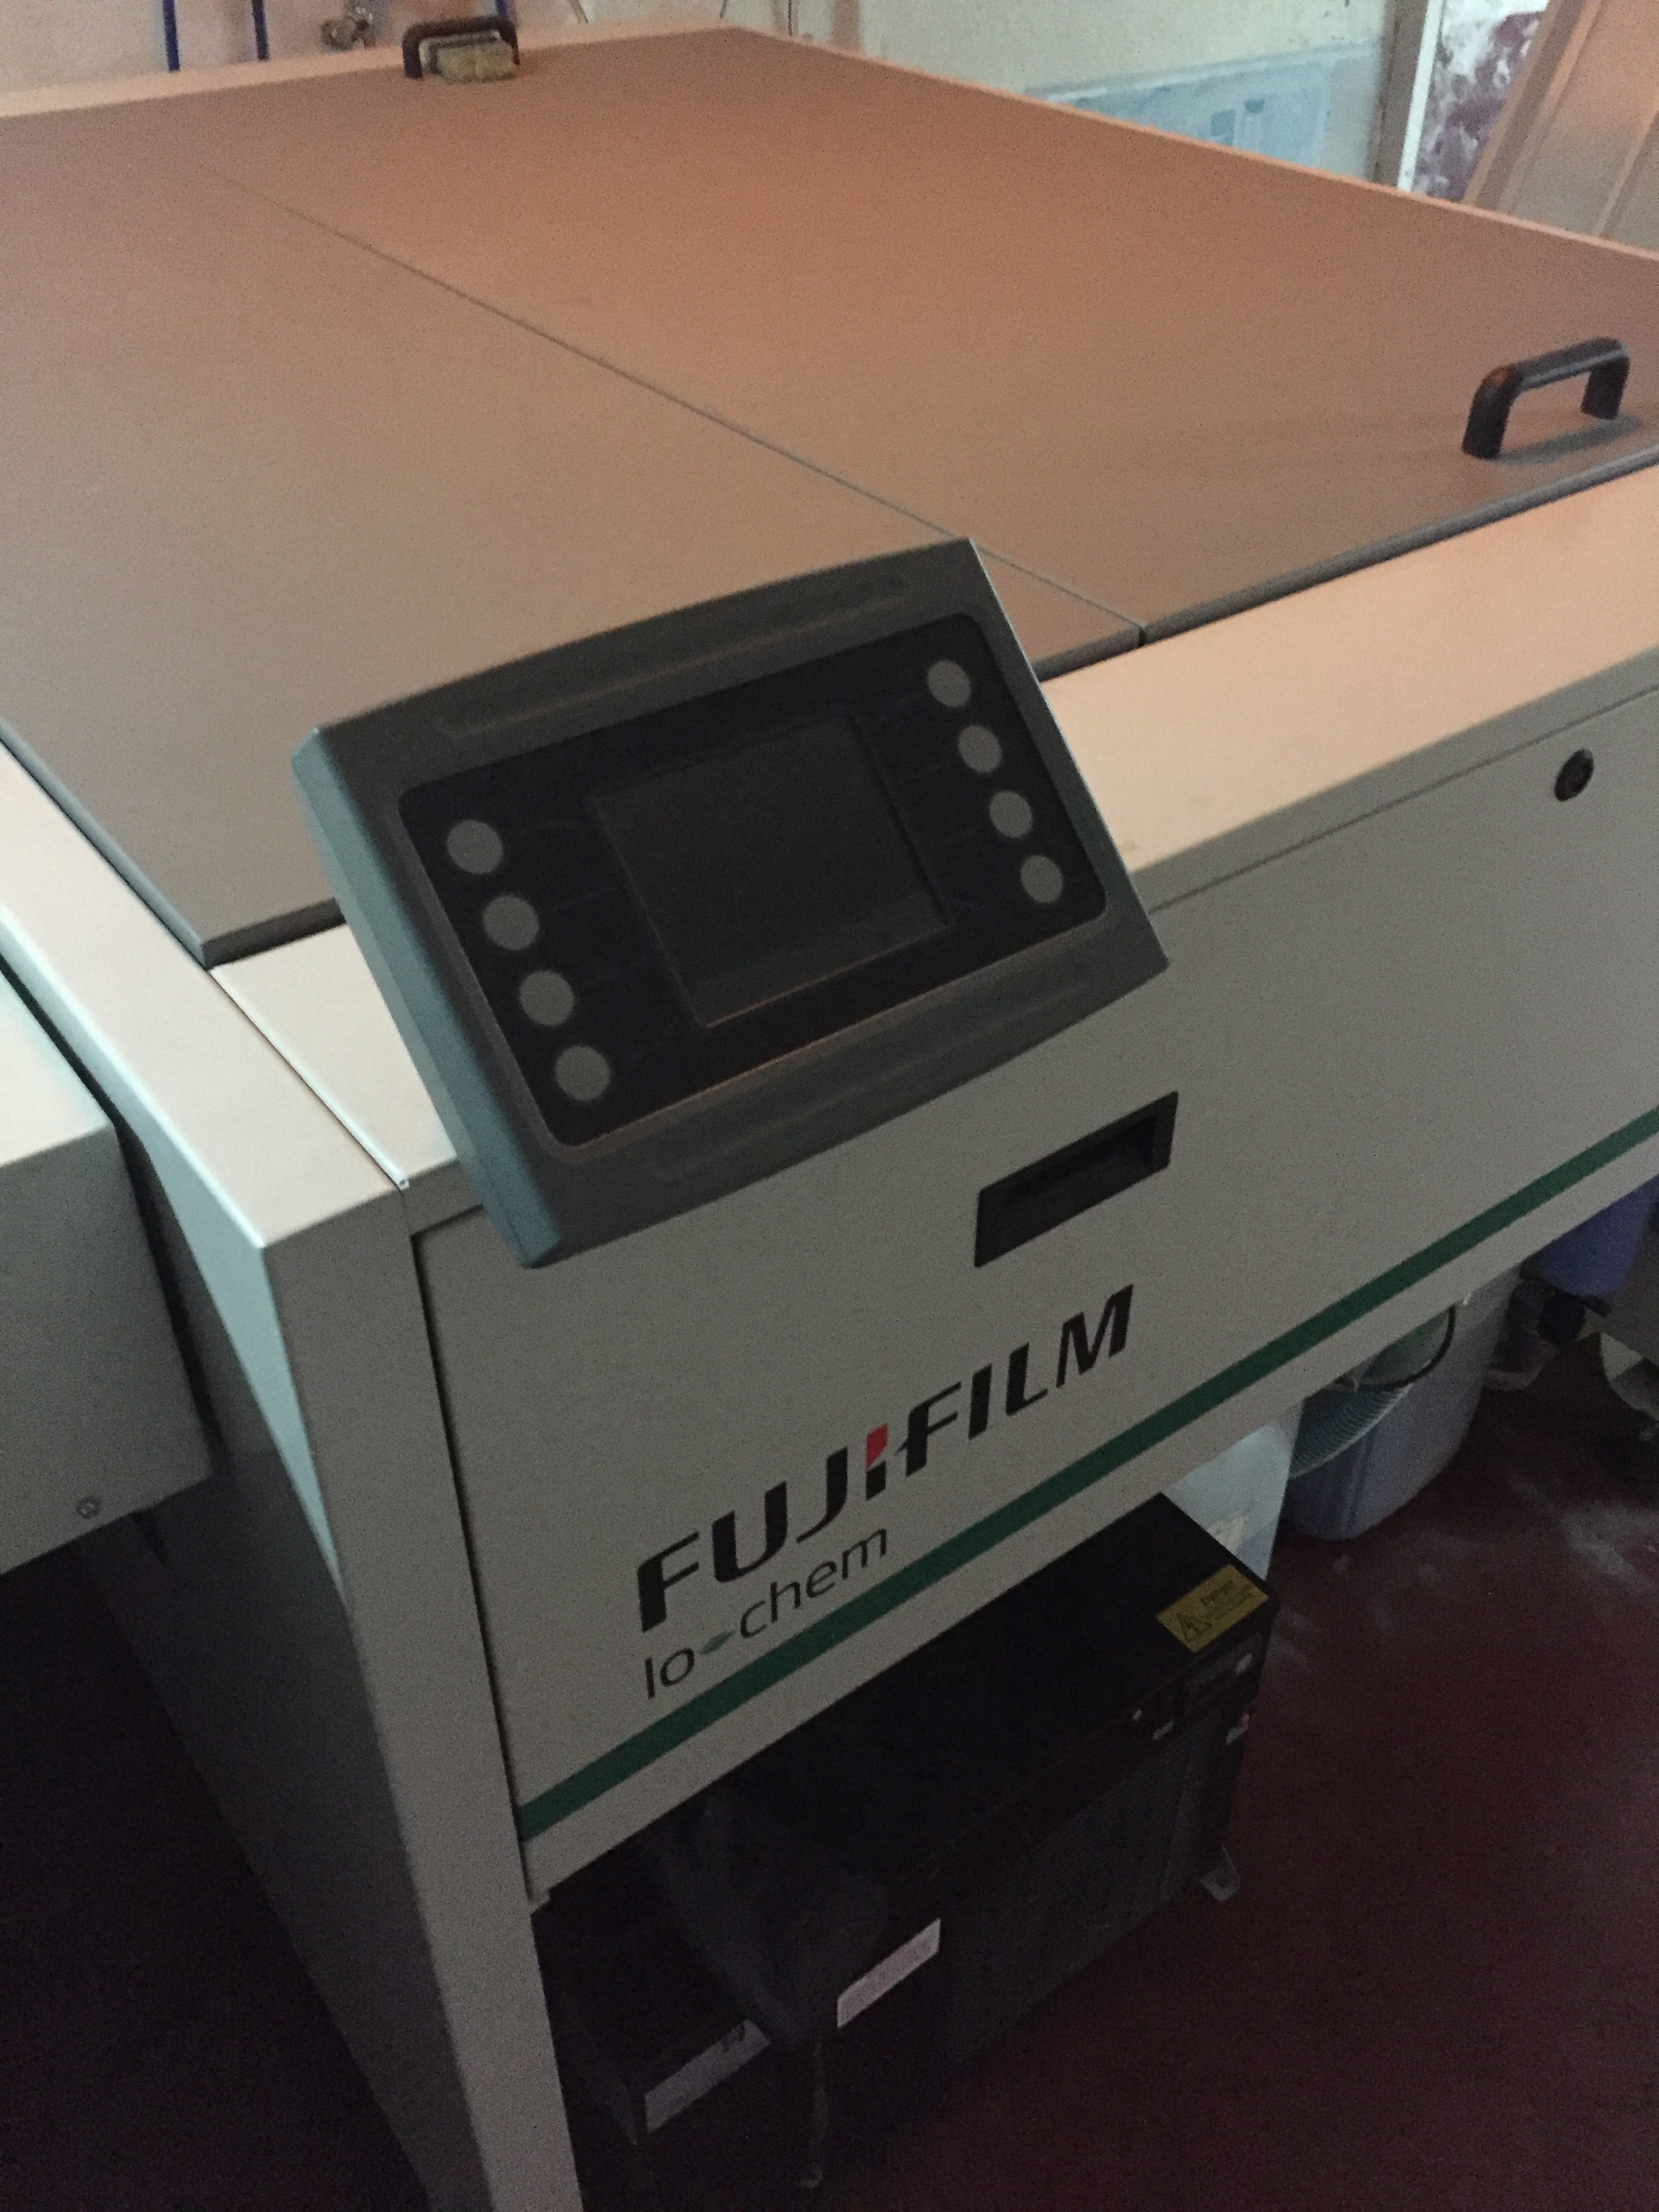 Fuji Film Instax Film, Fuji Film Instax Film Suppliers and ...